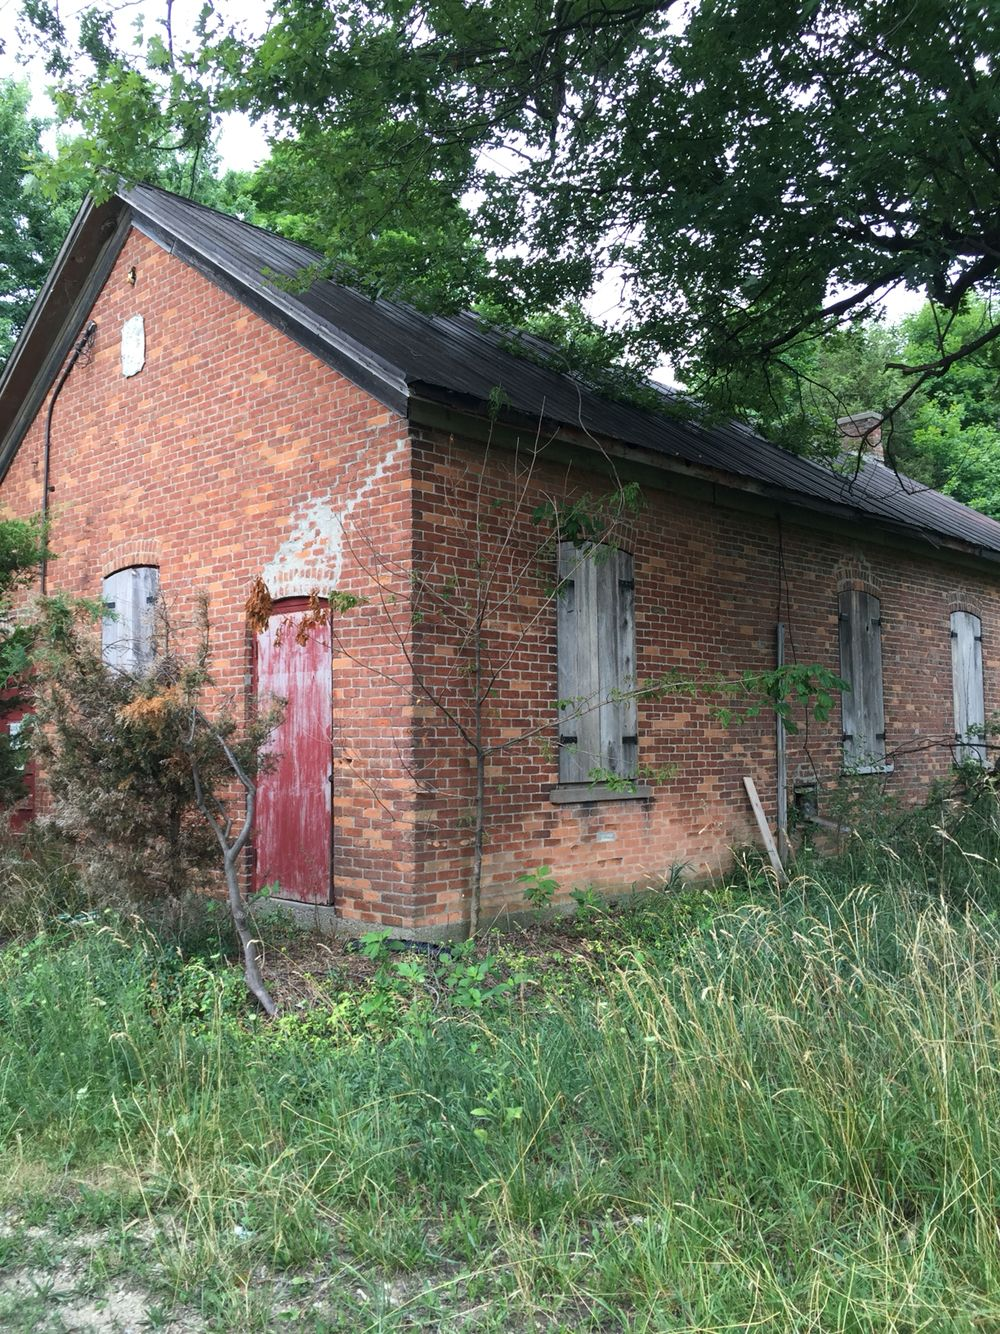 An old school house in need of a tenant